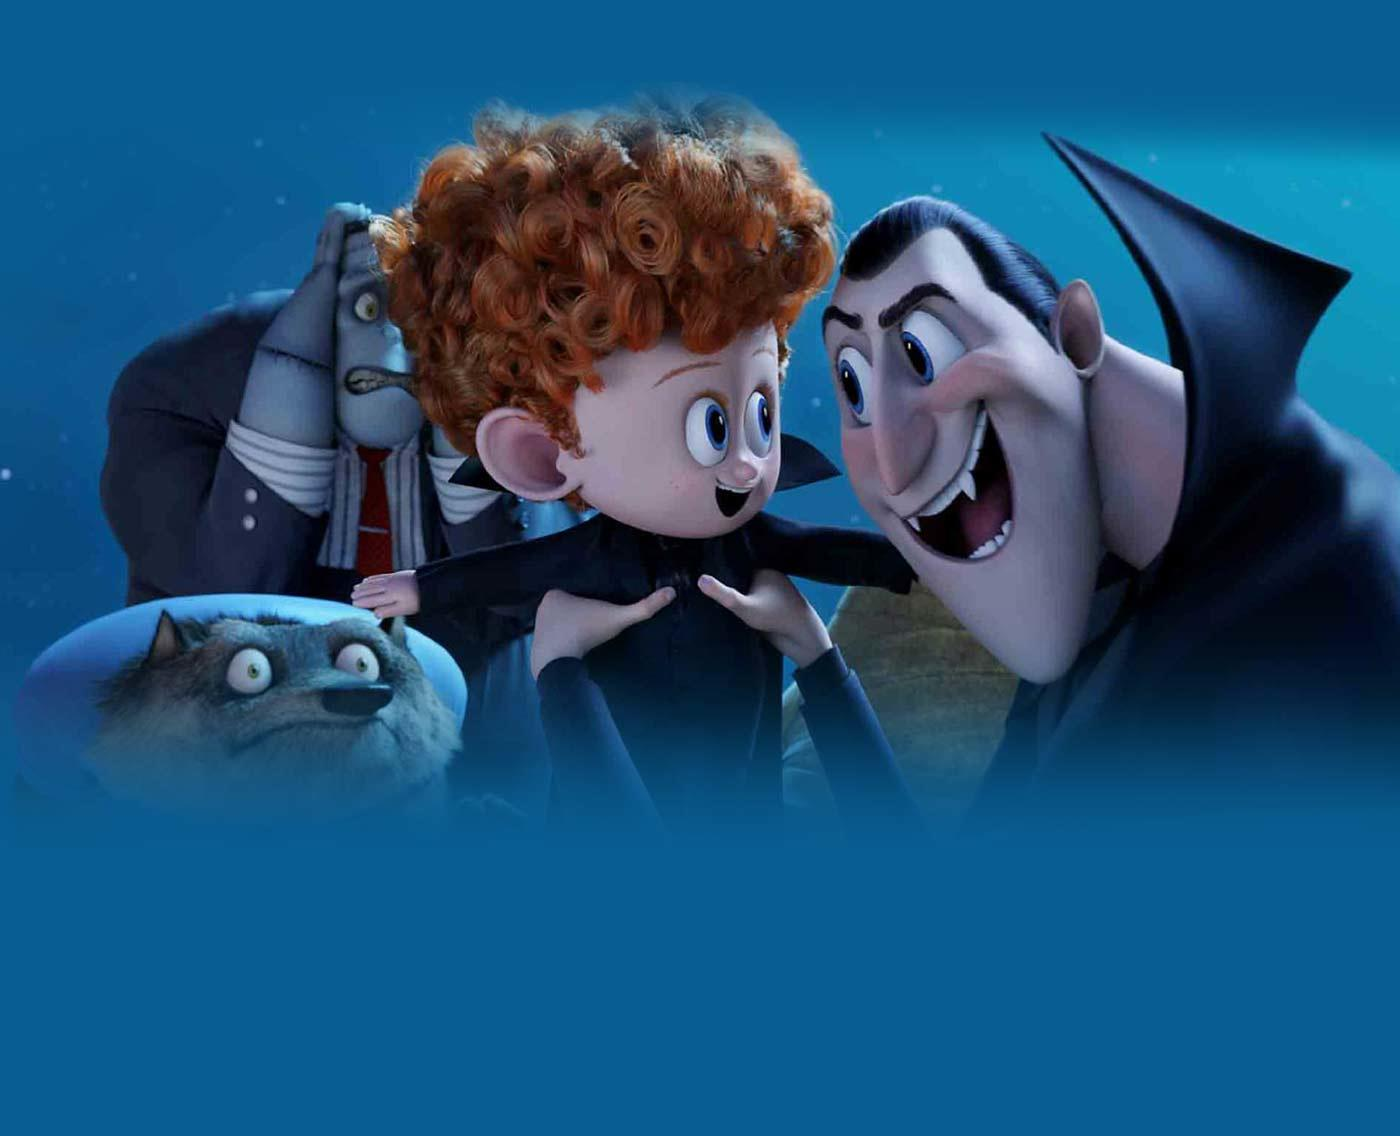 Check out all the movie photos of 'Hotel Transylvania 2'